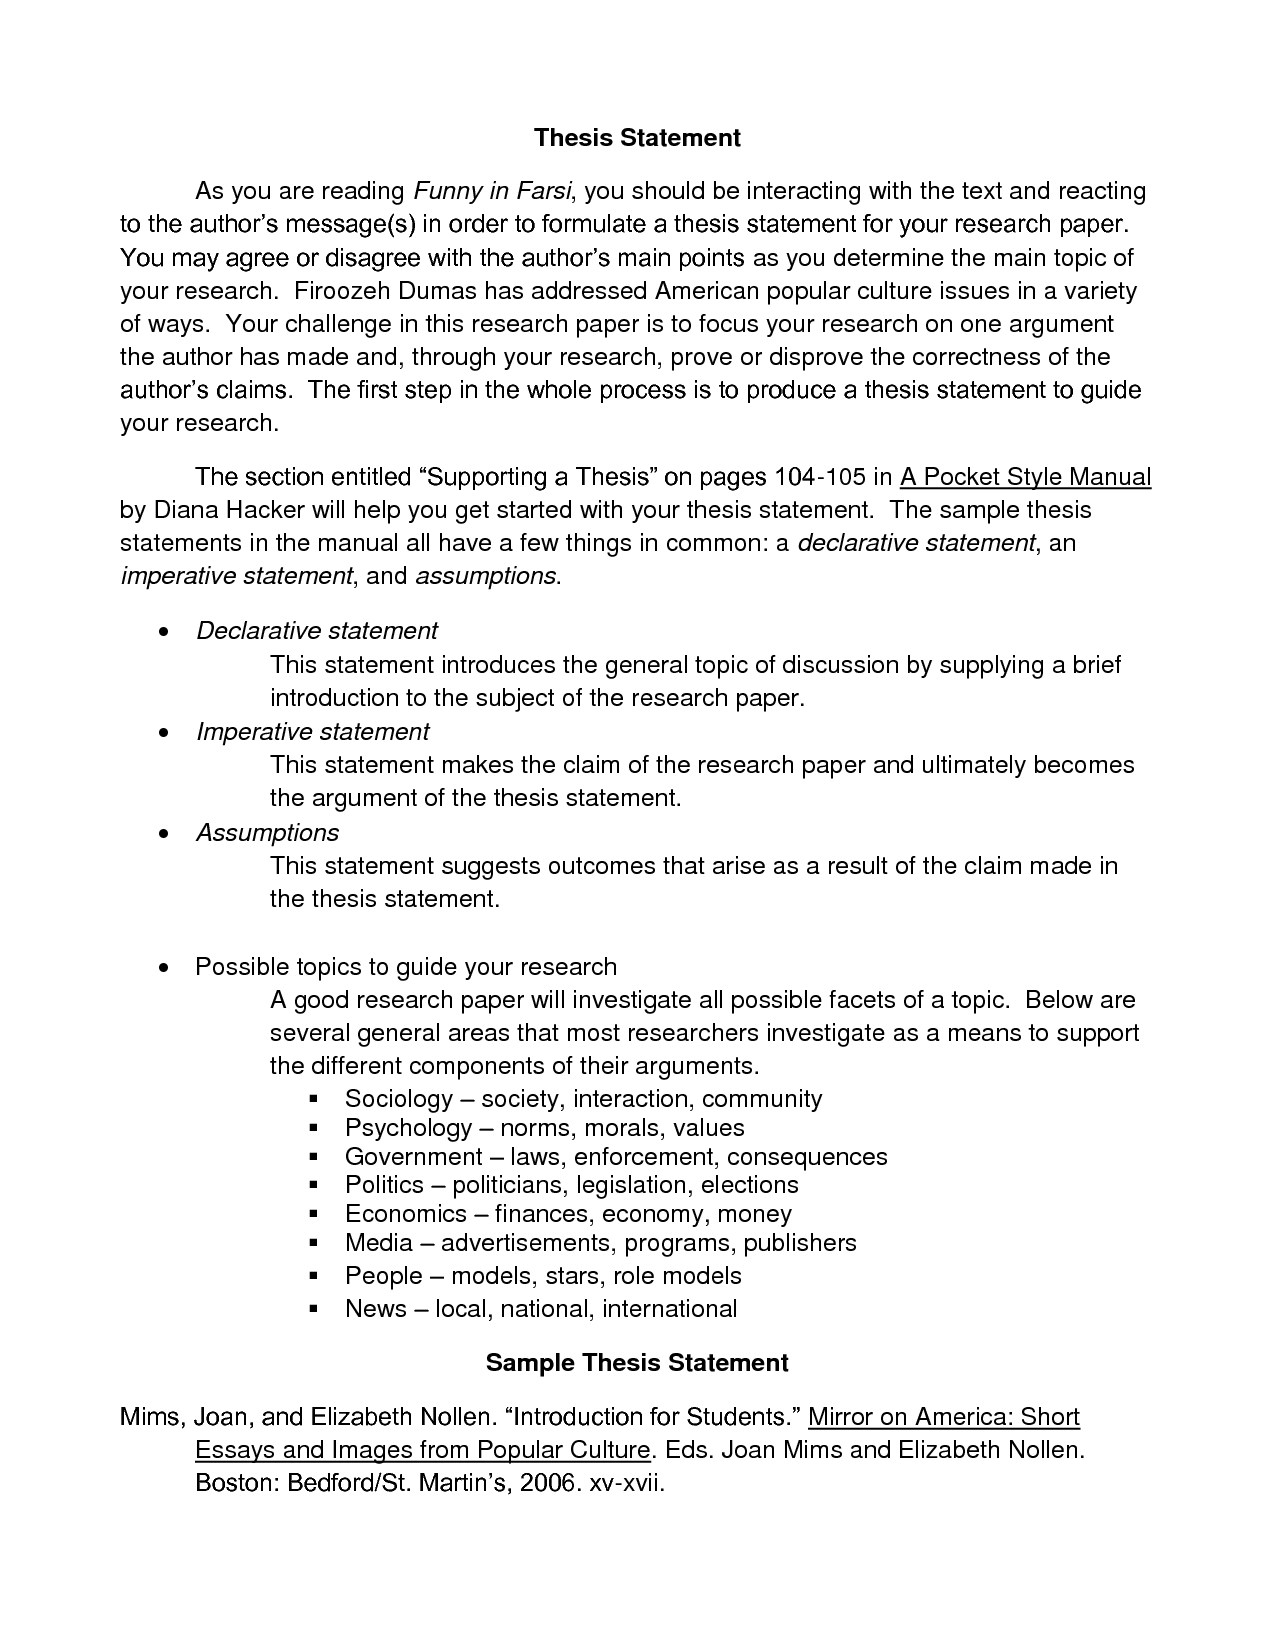 Proquest dissertations and theses password